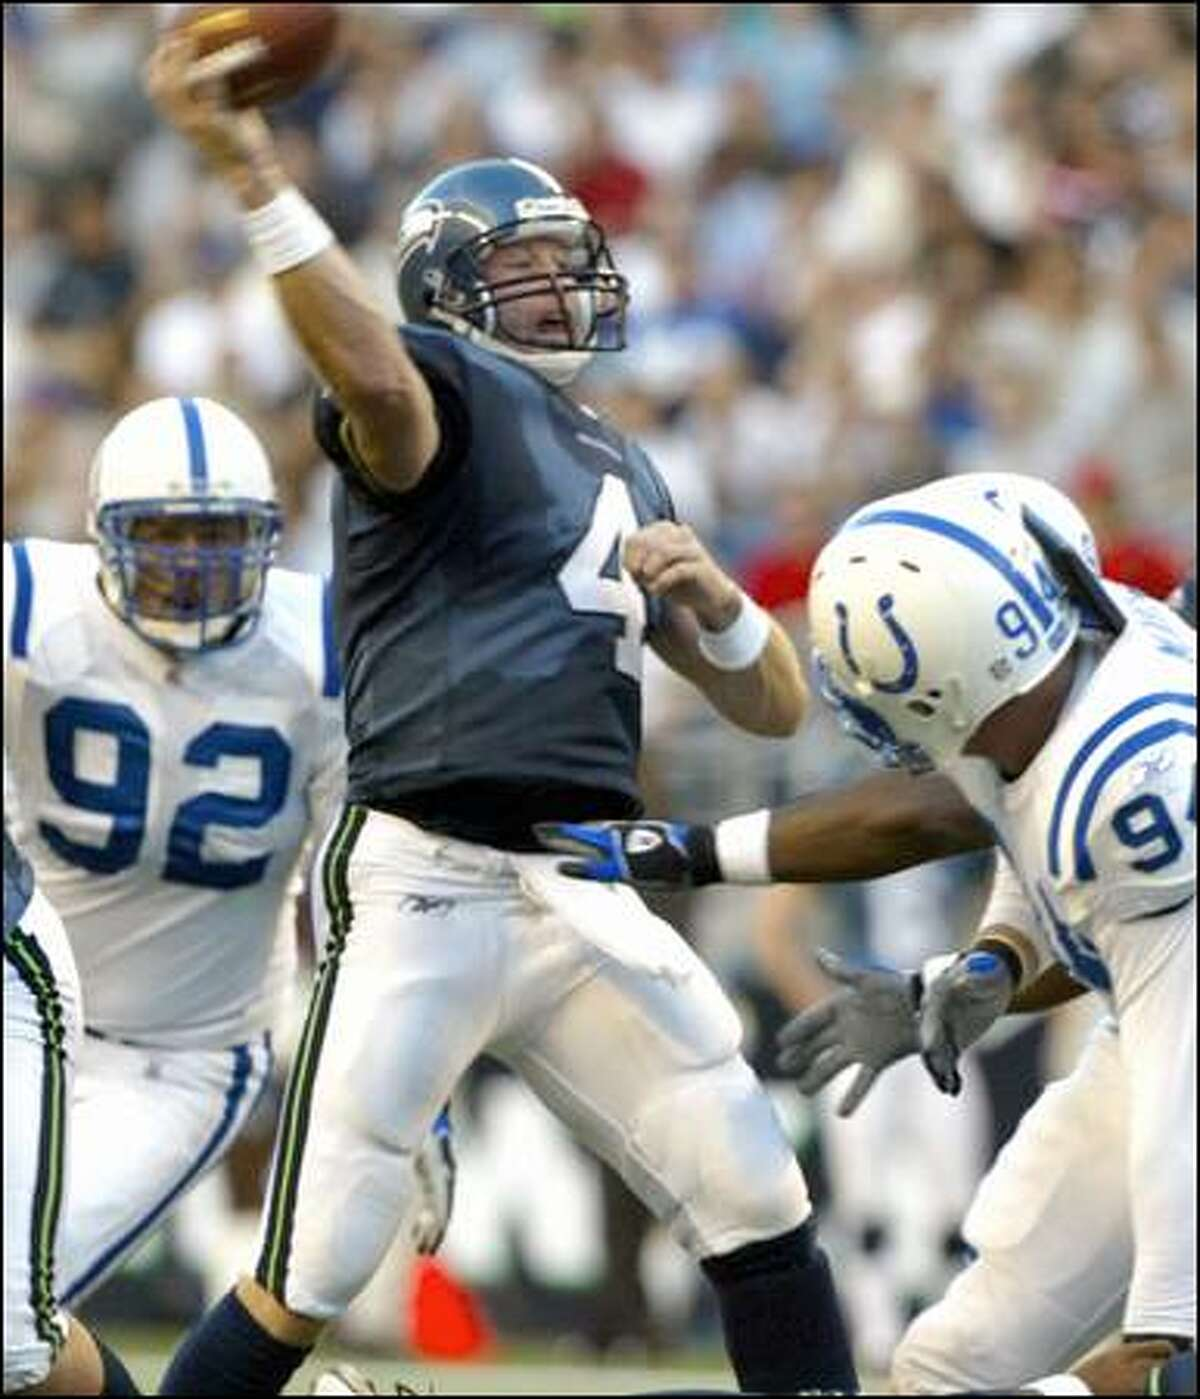 Trent Dilfer throws a pass in the first quarter before his injury.